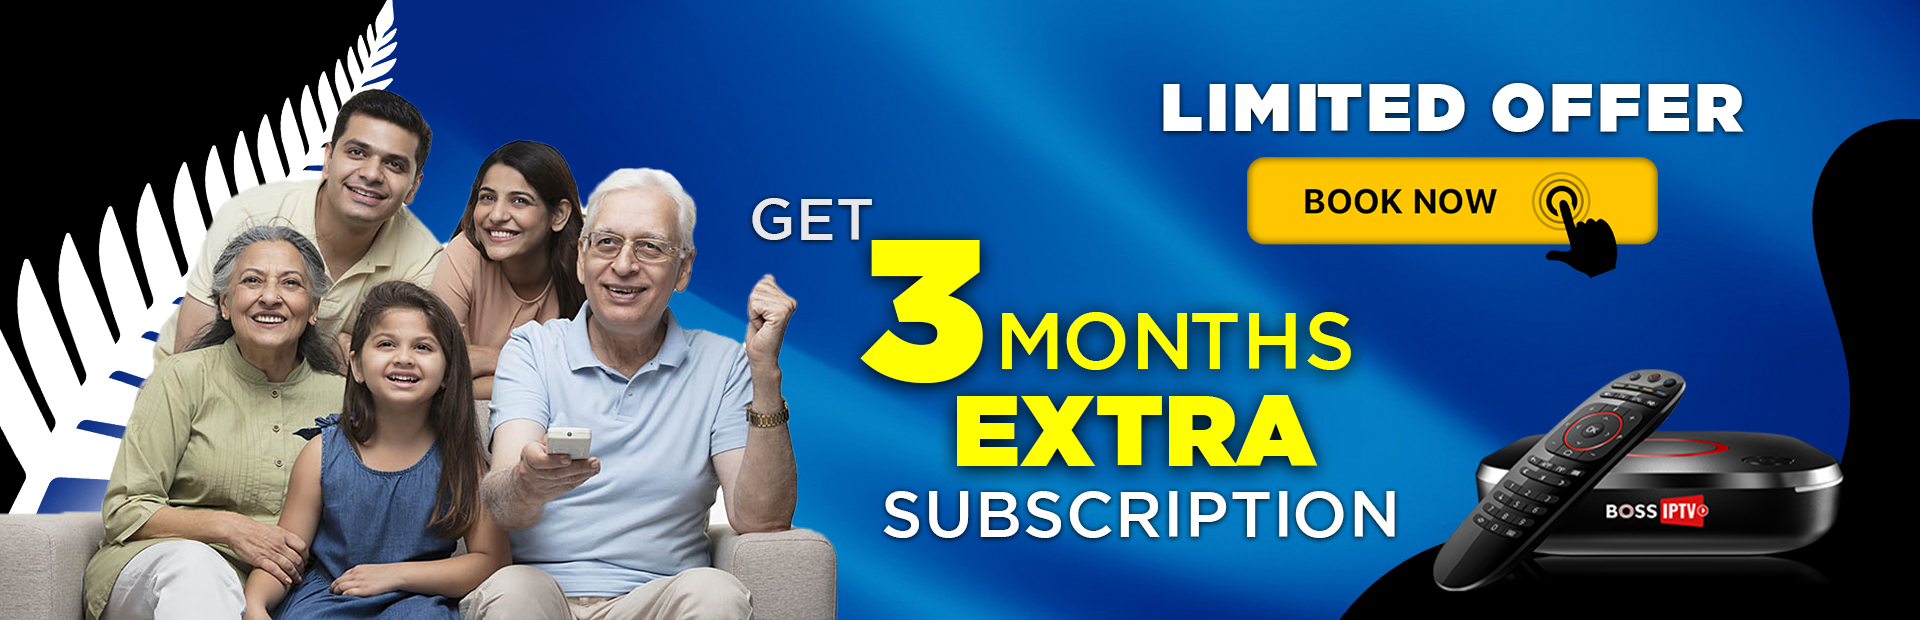 GET 3 MONTHS EXTRA SUBSCRIPTION